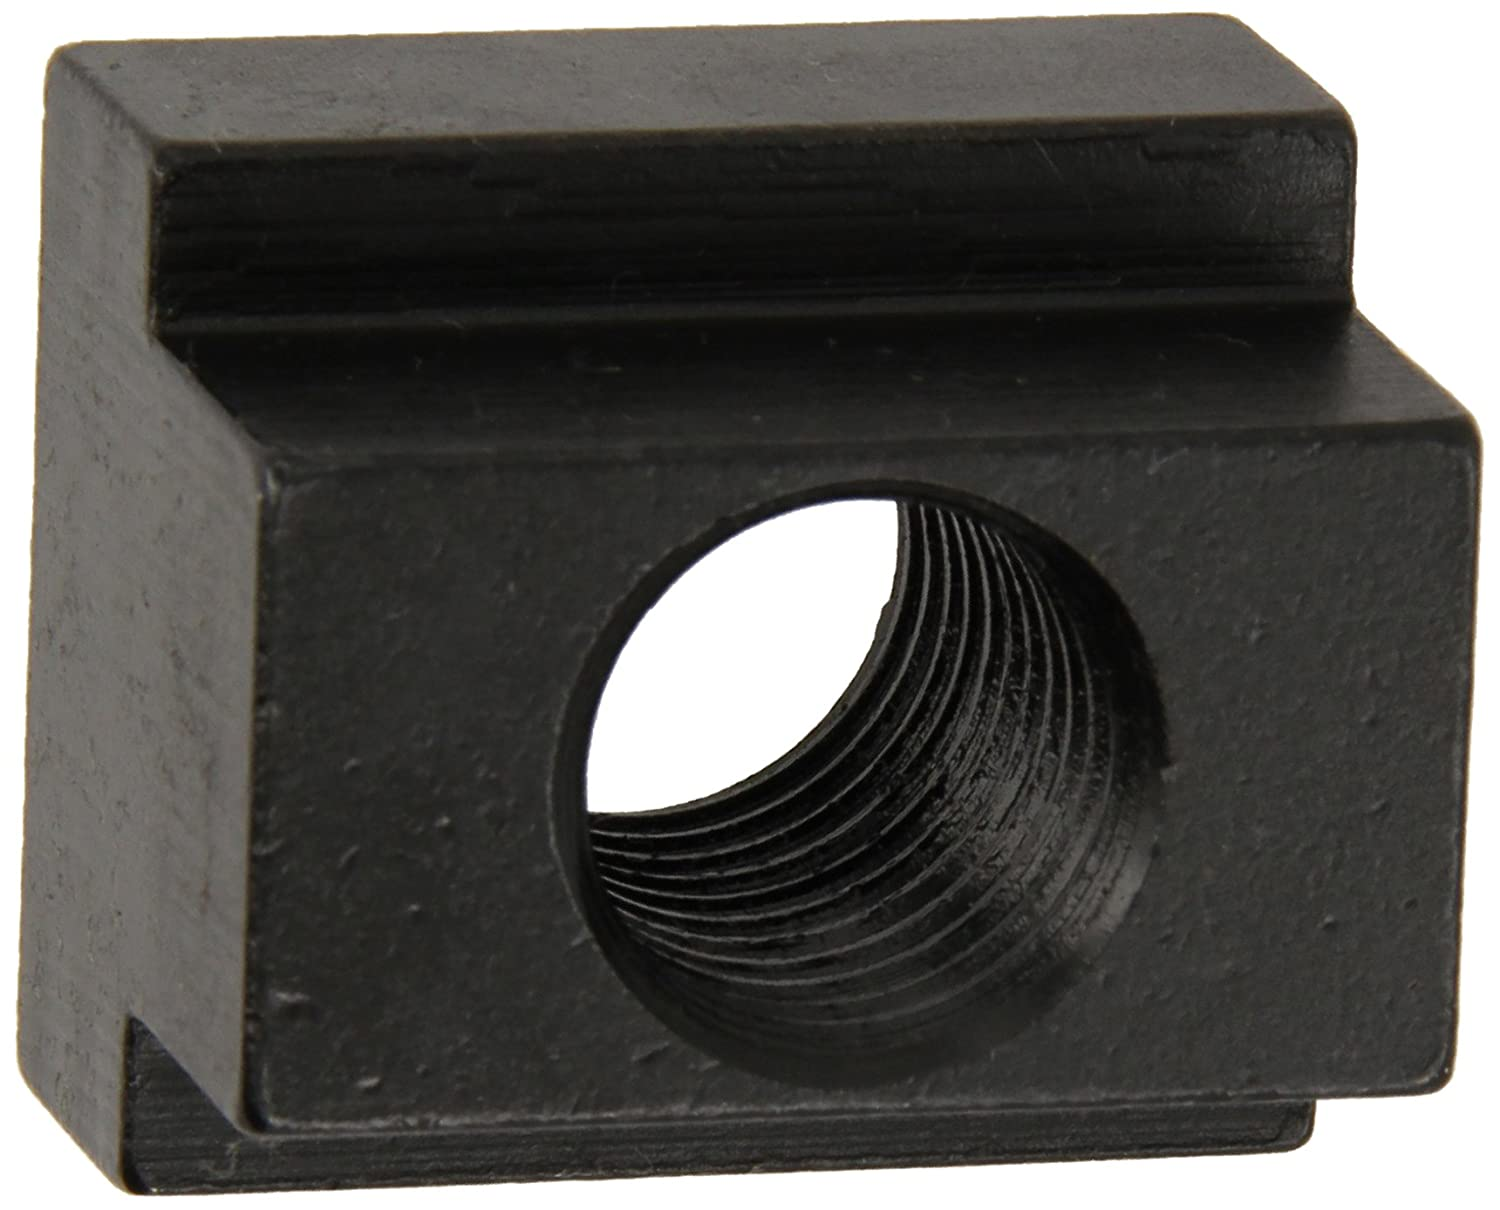 Made in US 5//8 Height 1018 Steel T-Slot Nut Pack of 5 1//2-13 Threads Black Oxide Finish 5//8 Slot Depth Grade 2